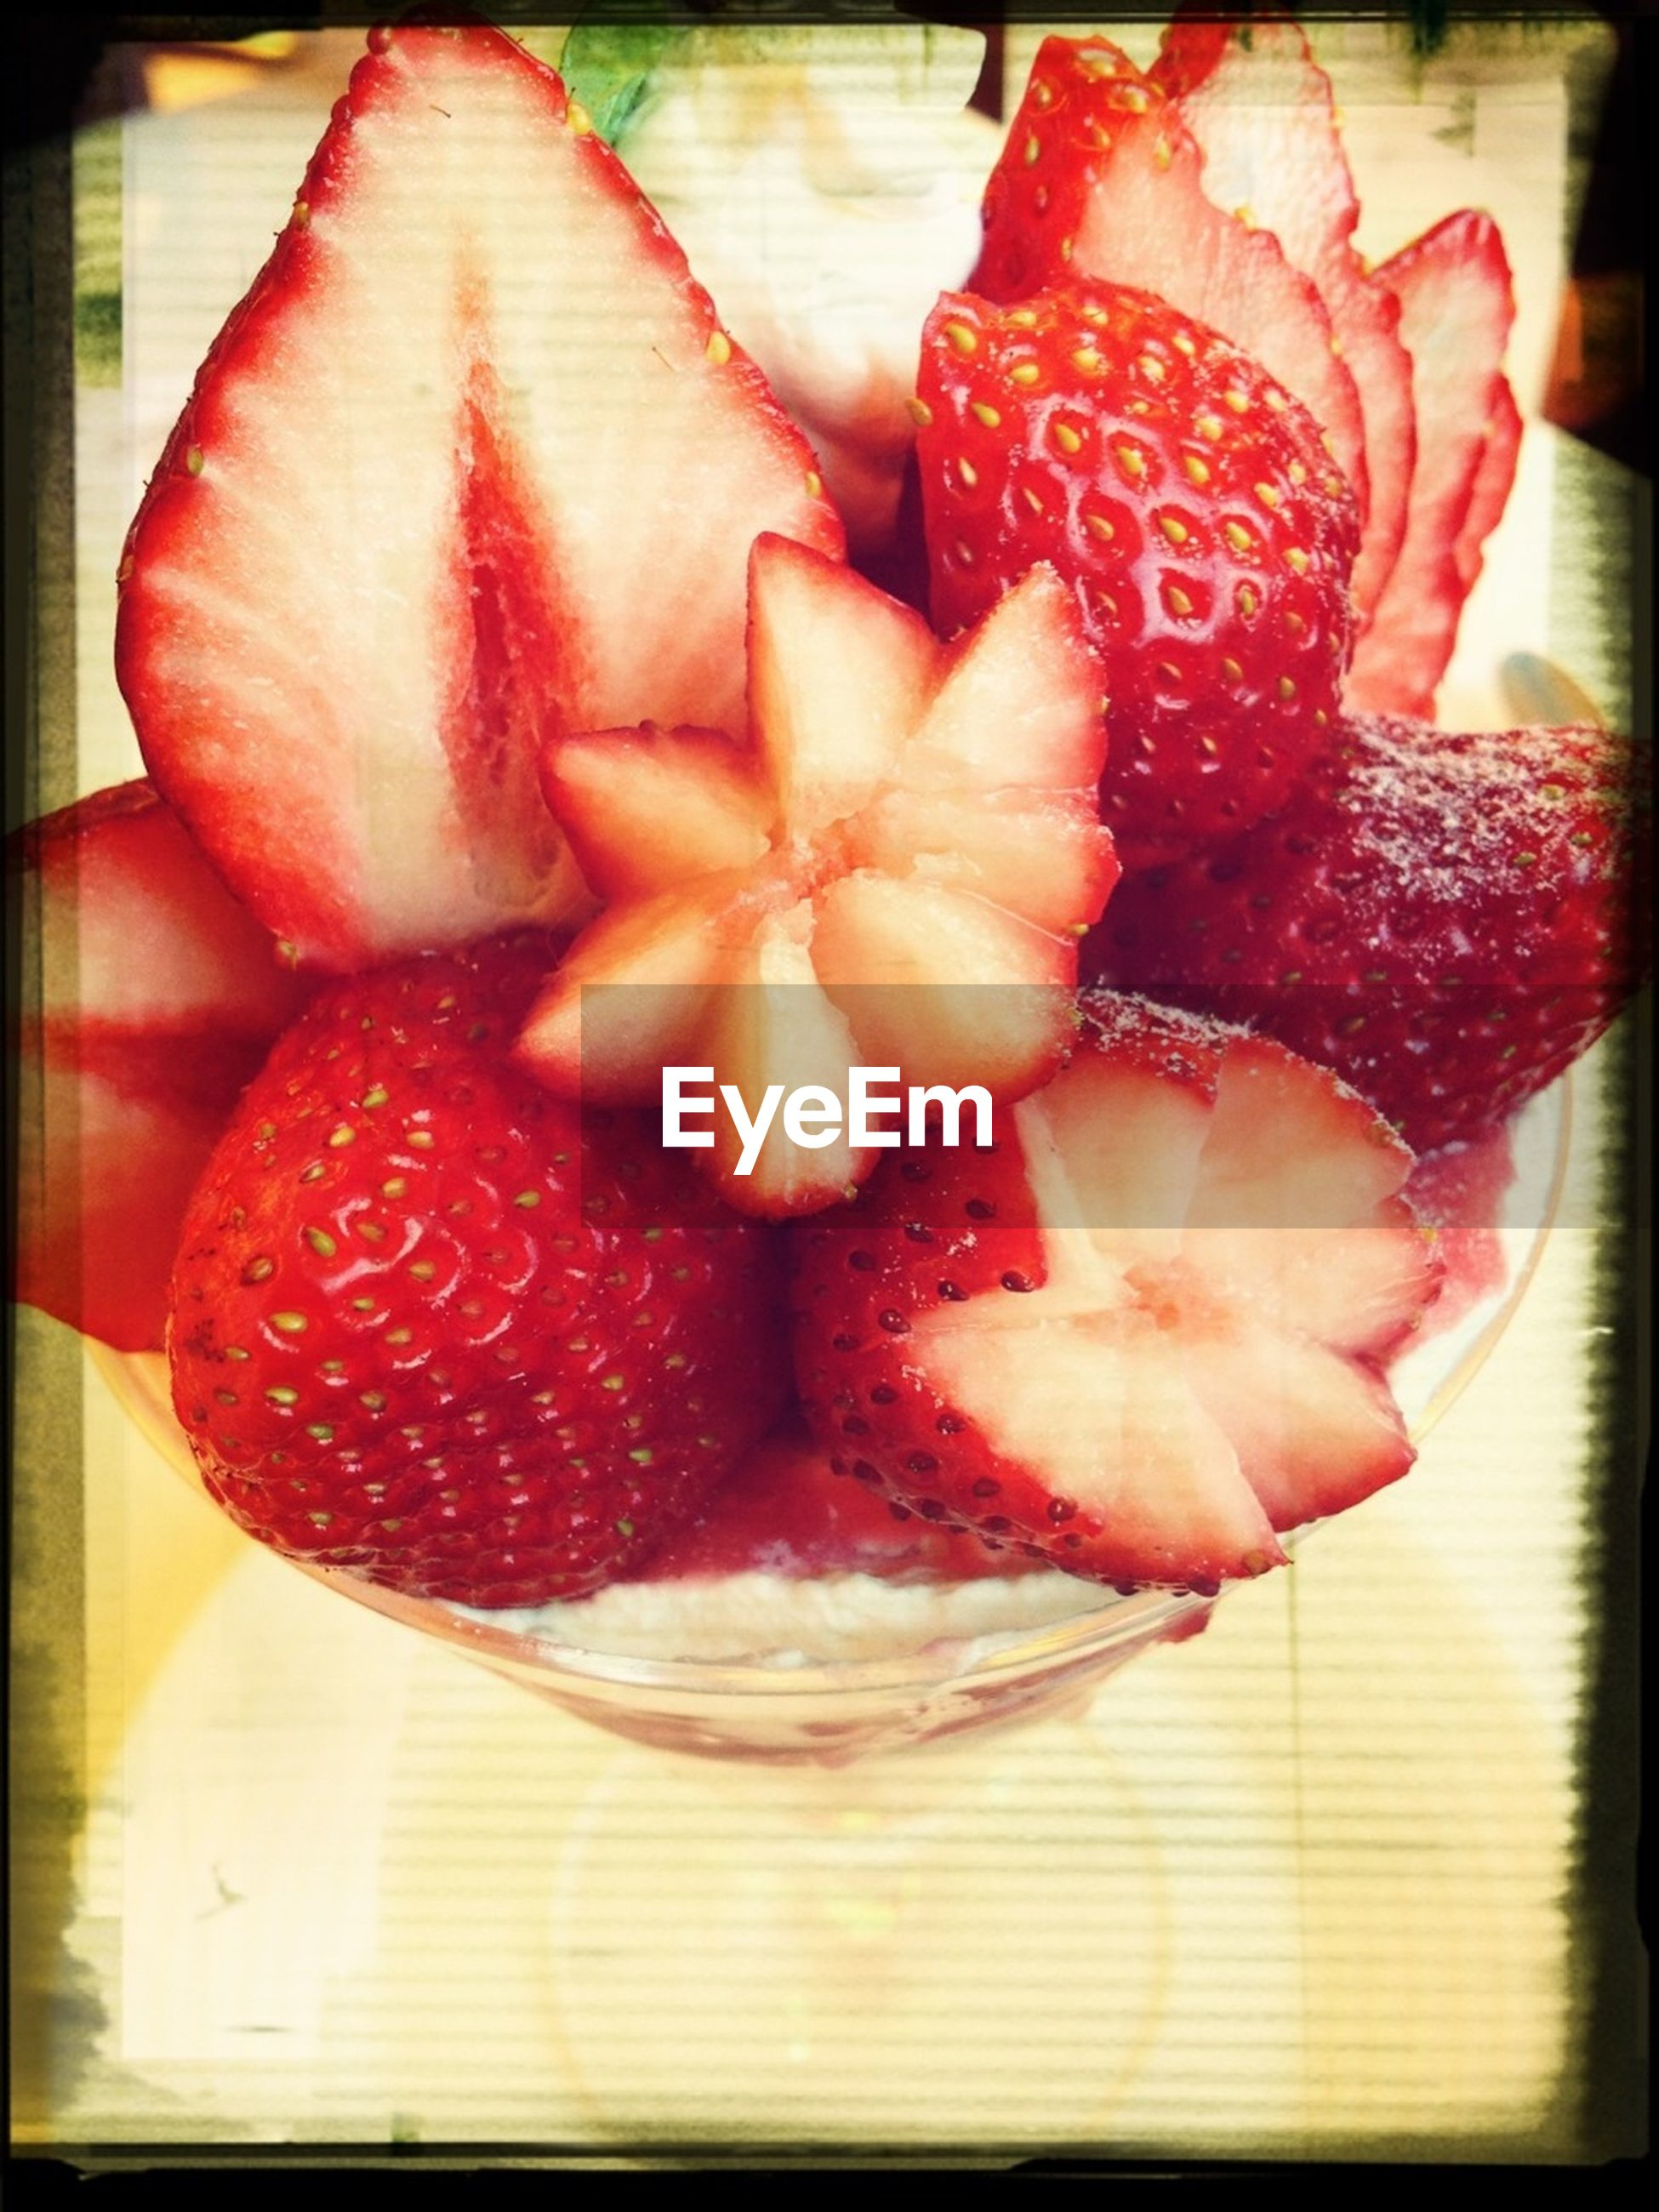 food and drink, freshness, food, indoors, transfer print, red, fruit, strawberry, close-up, healthy eating, sweet food, auto post production filter, still life, indulgence, table, dessert, ready-to-eat, slice, raspberry